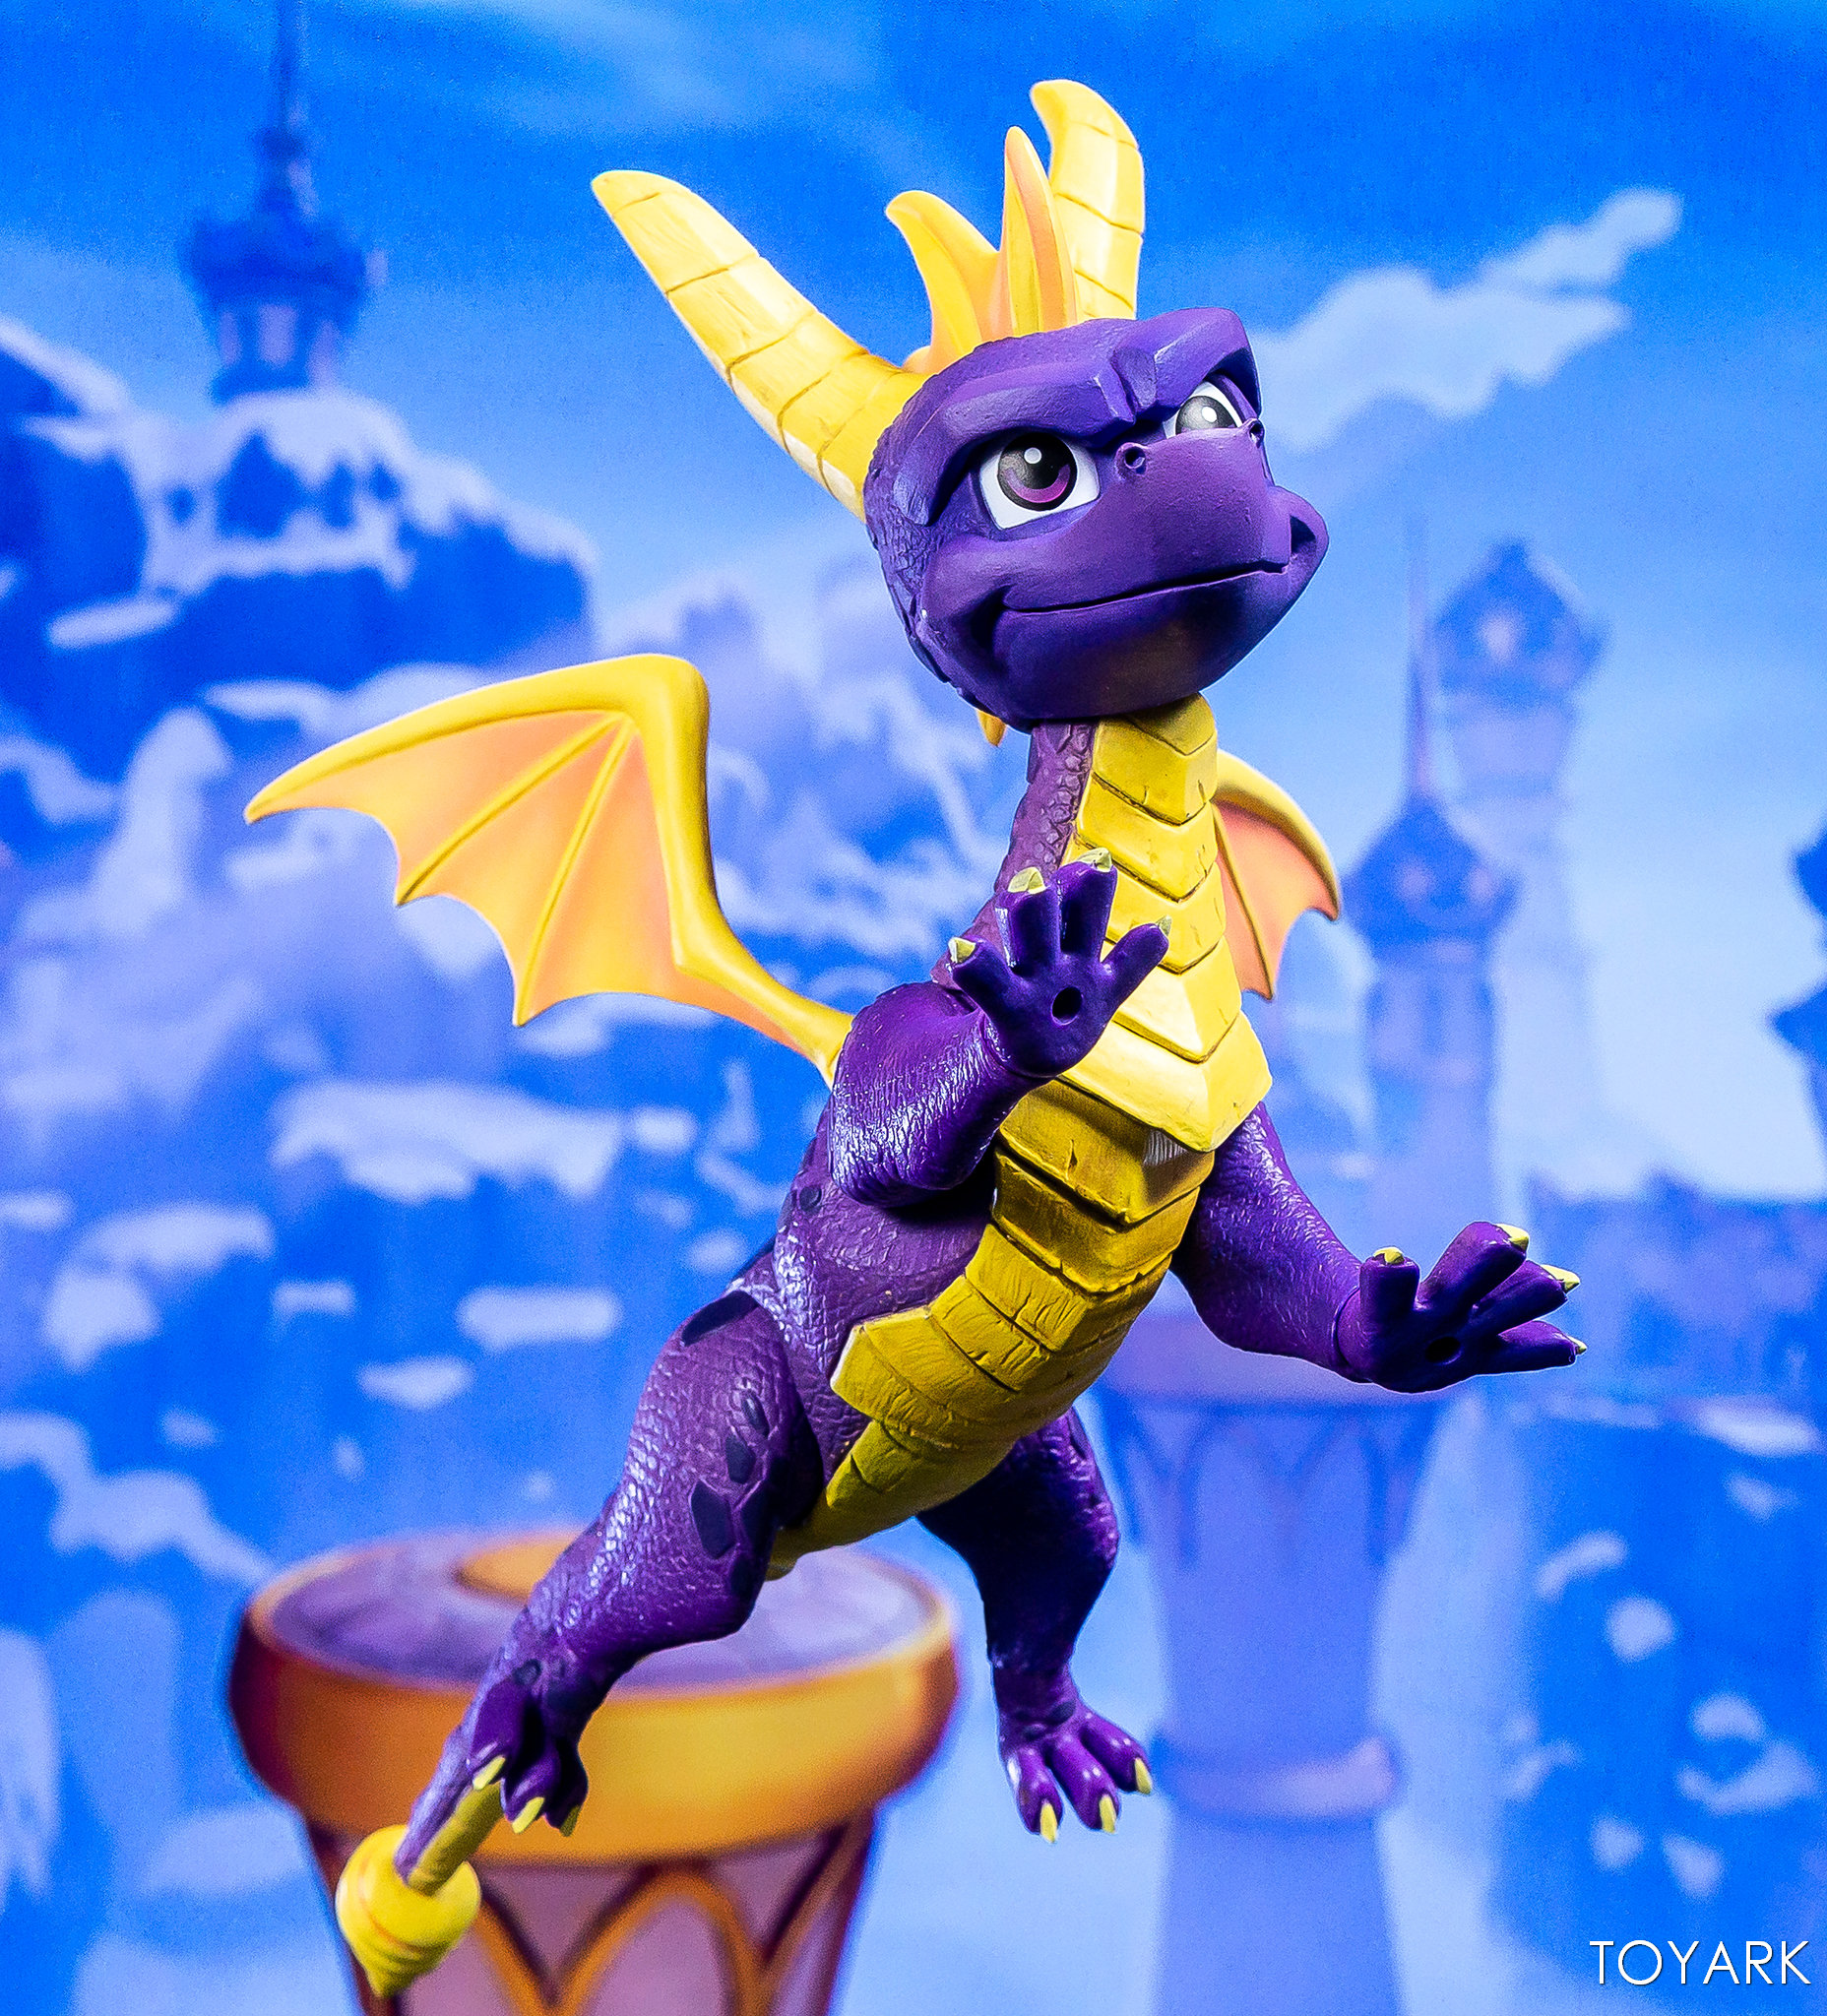 https://news.toyark.com/wp-content/uploads/sites/4/2019/03/NECA-Spyro-The-Dragon-Figure-017.jpg